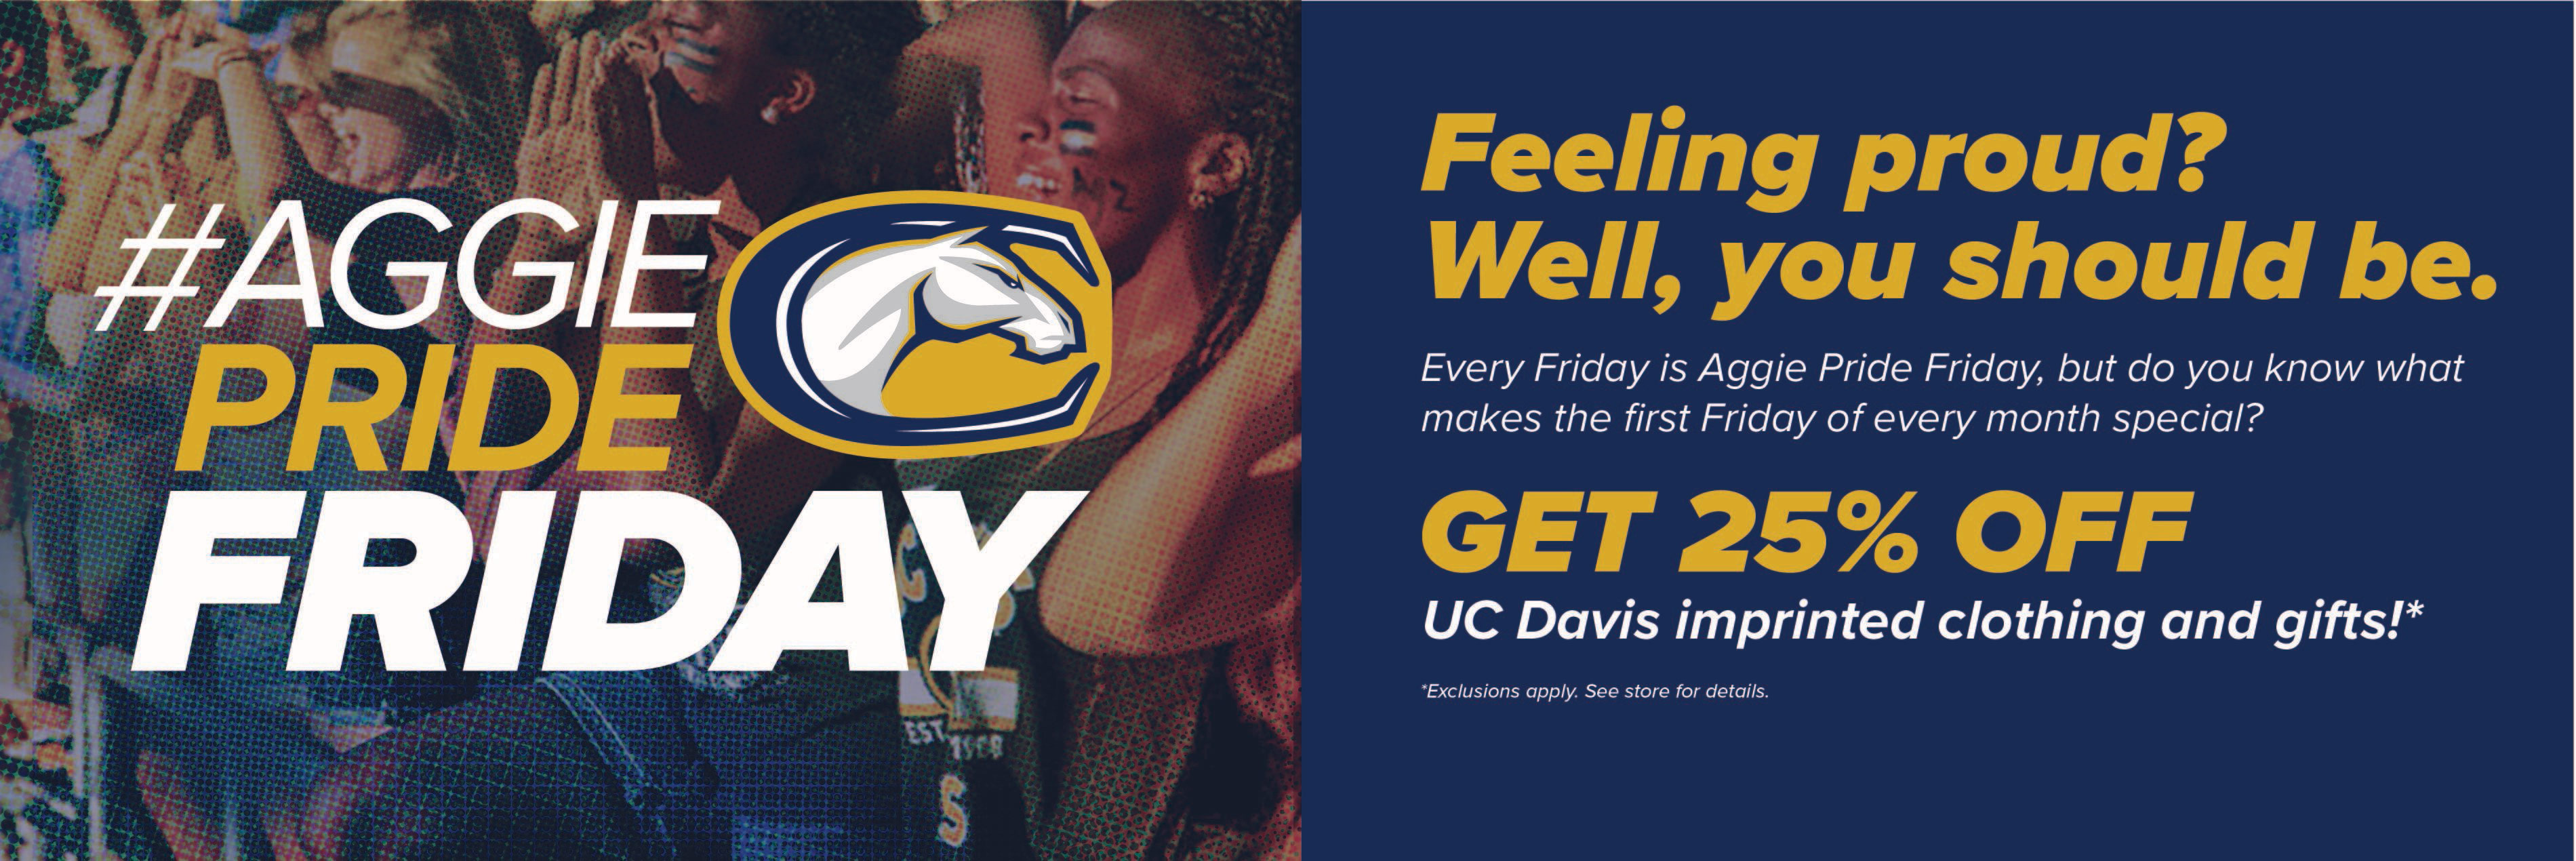 Save 25% on UC Davis imprinted clothing and gifts at the Campus Store the first Friday of every month!